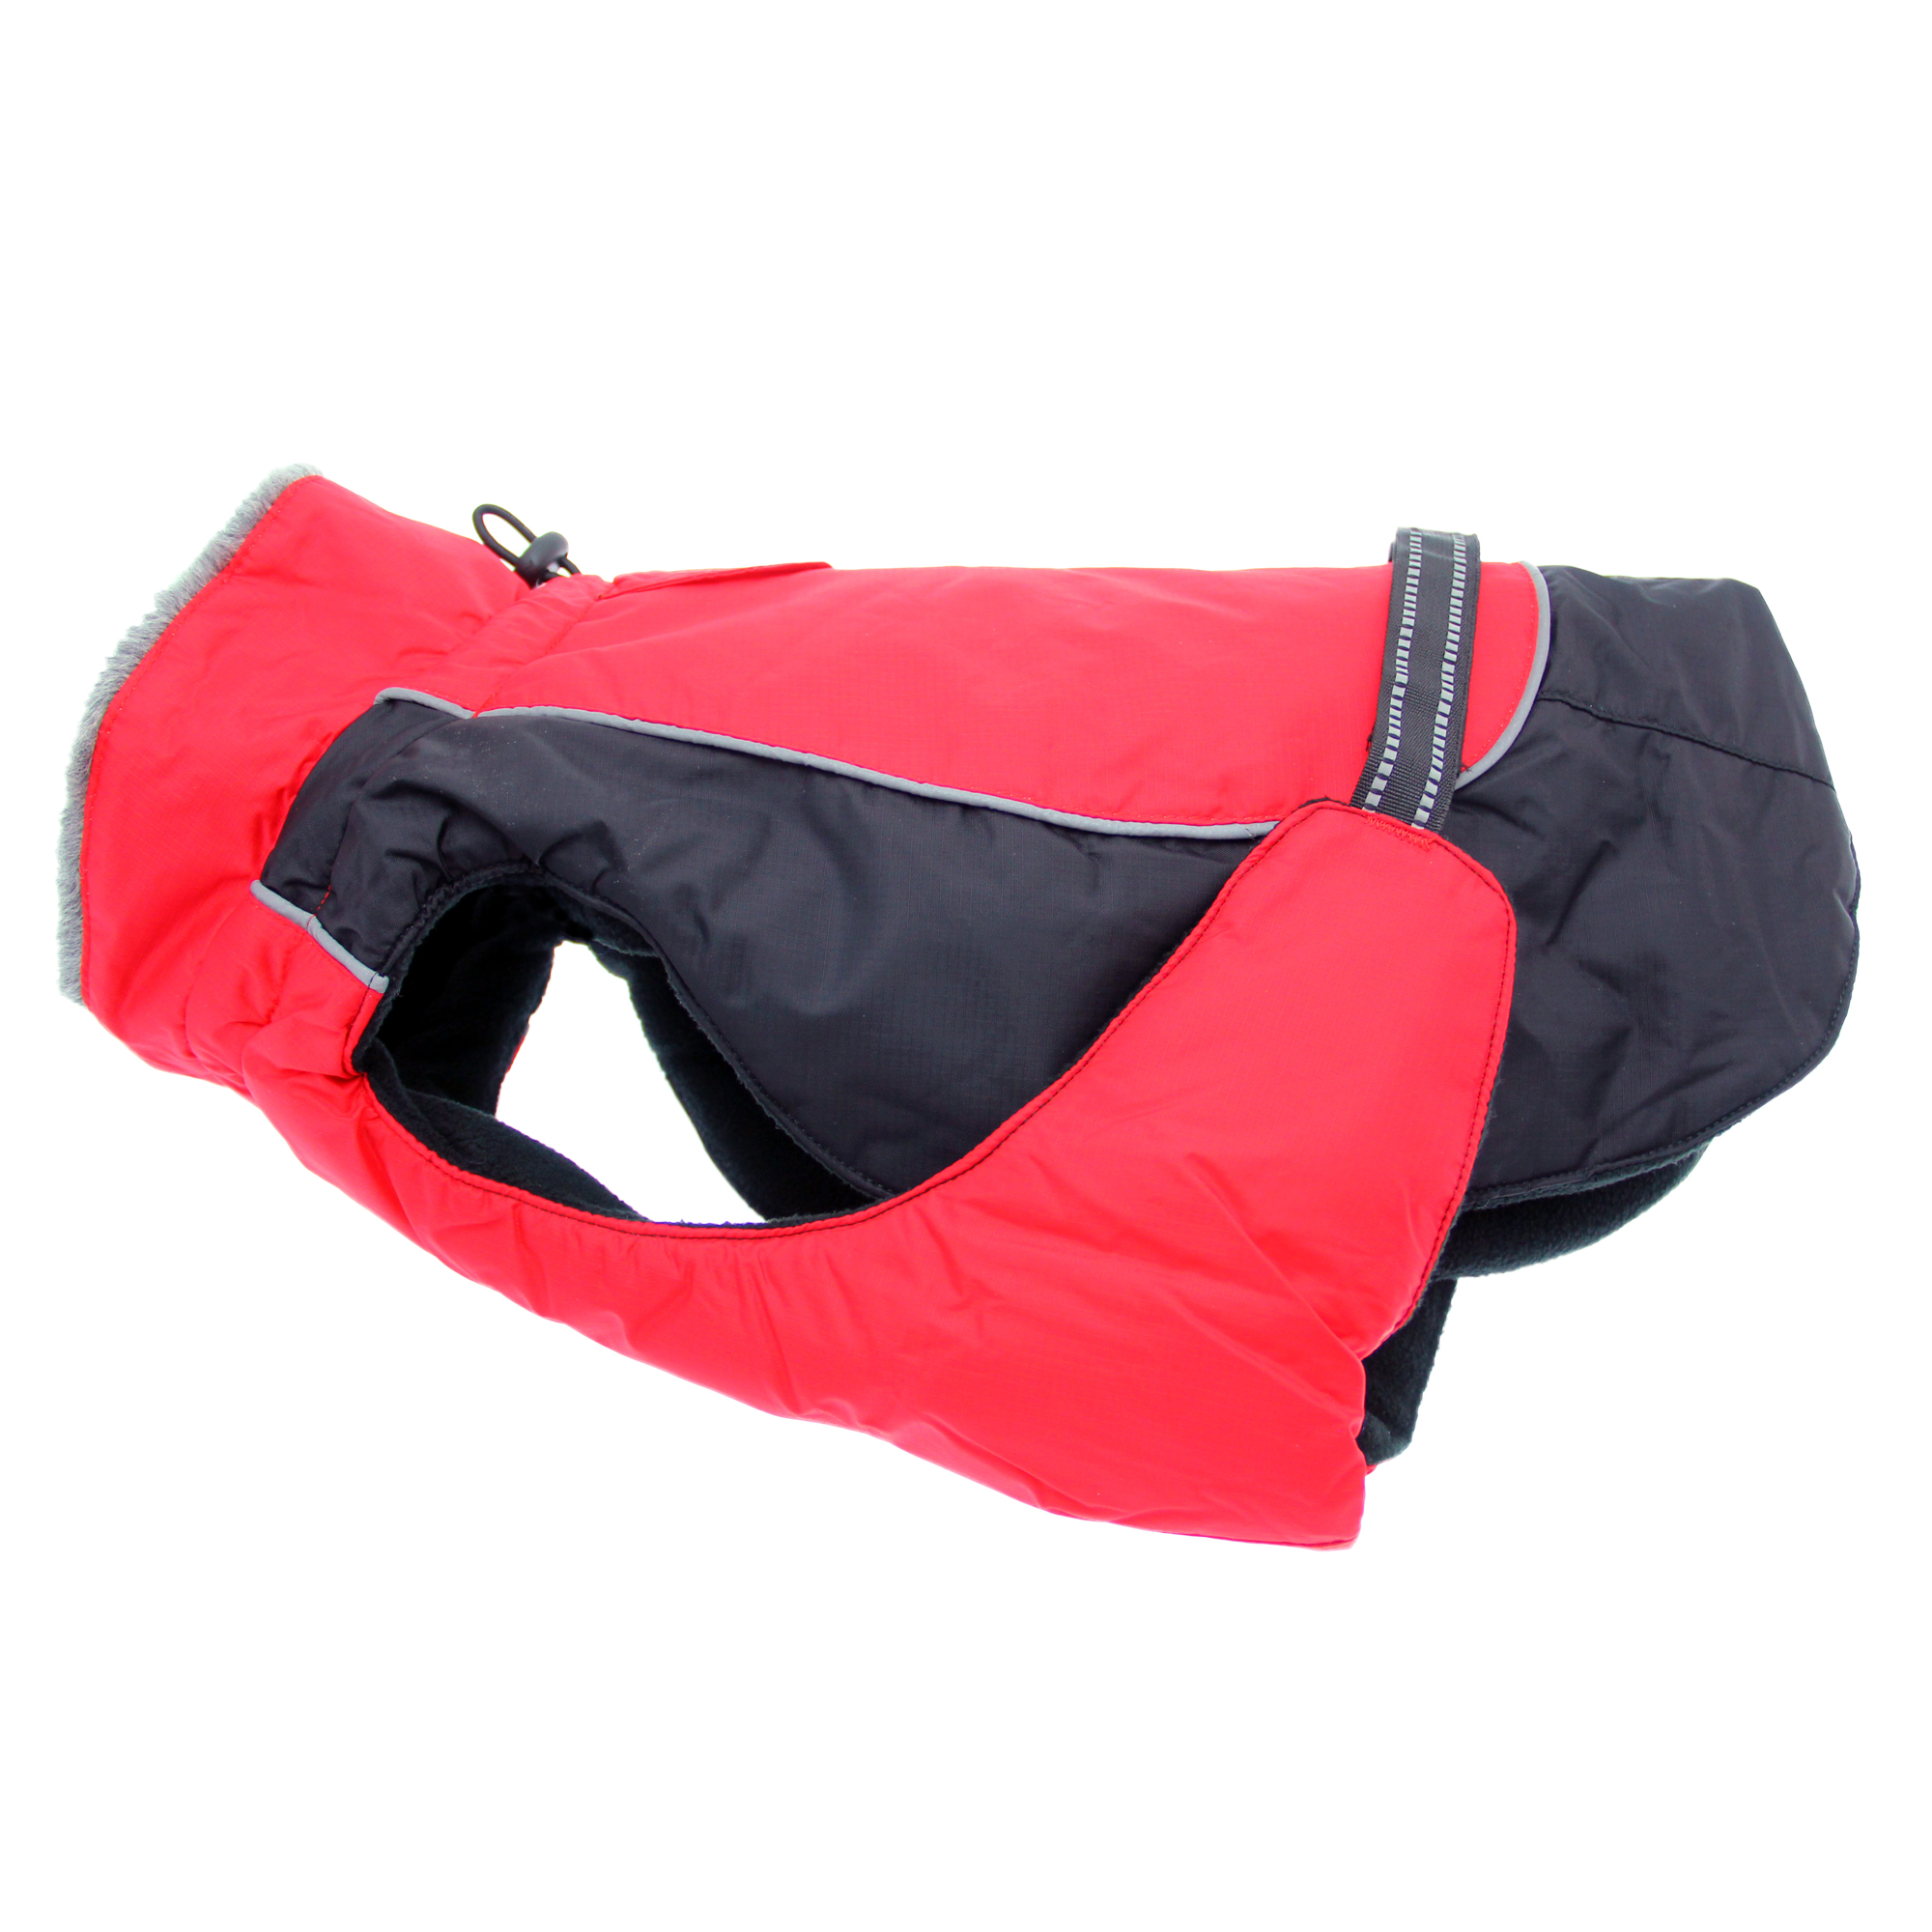 Doggie Design Alpine All-Weather Coat for Dogs, Red & Black, X-Small